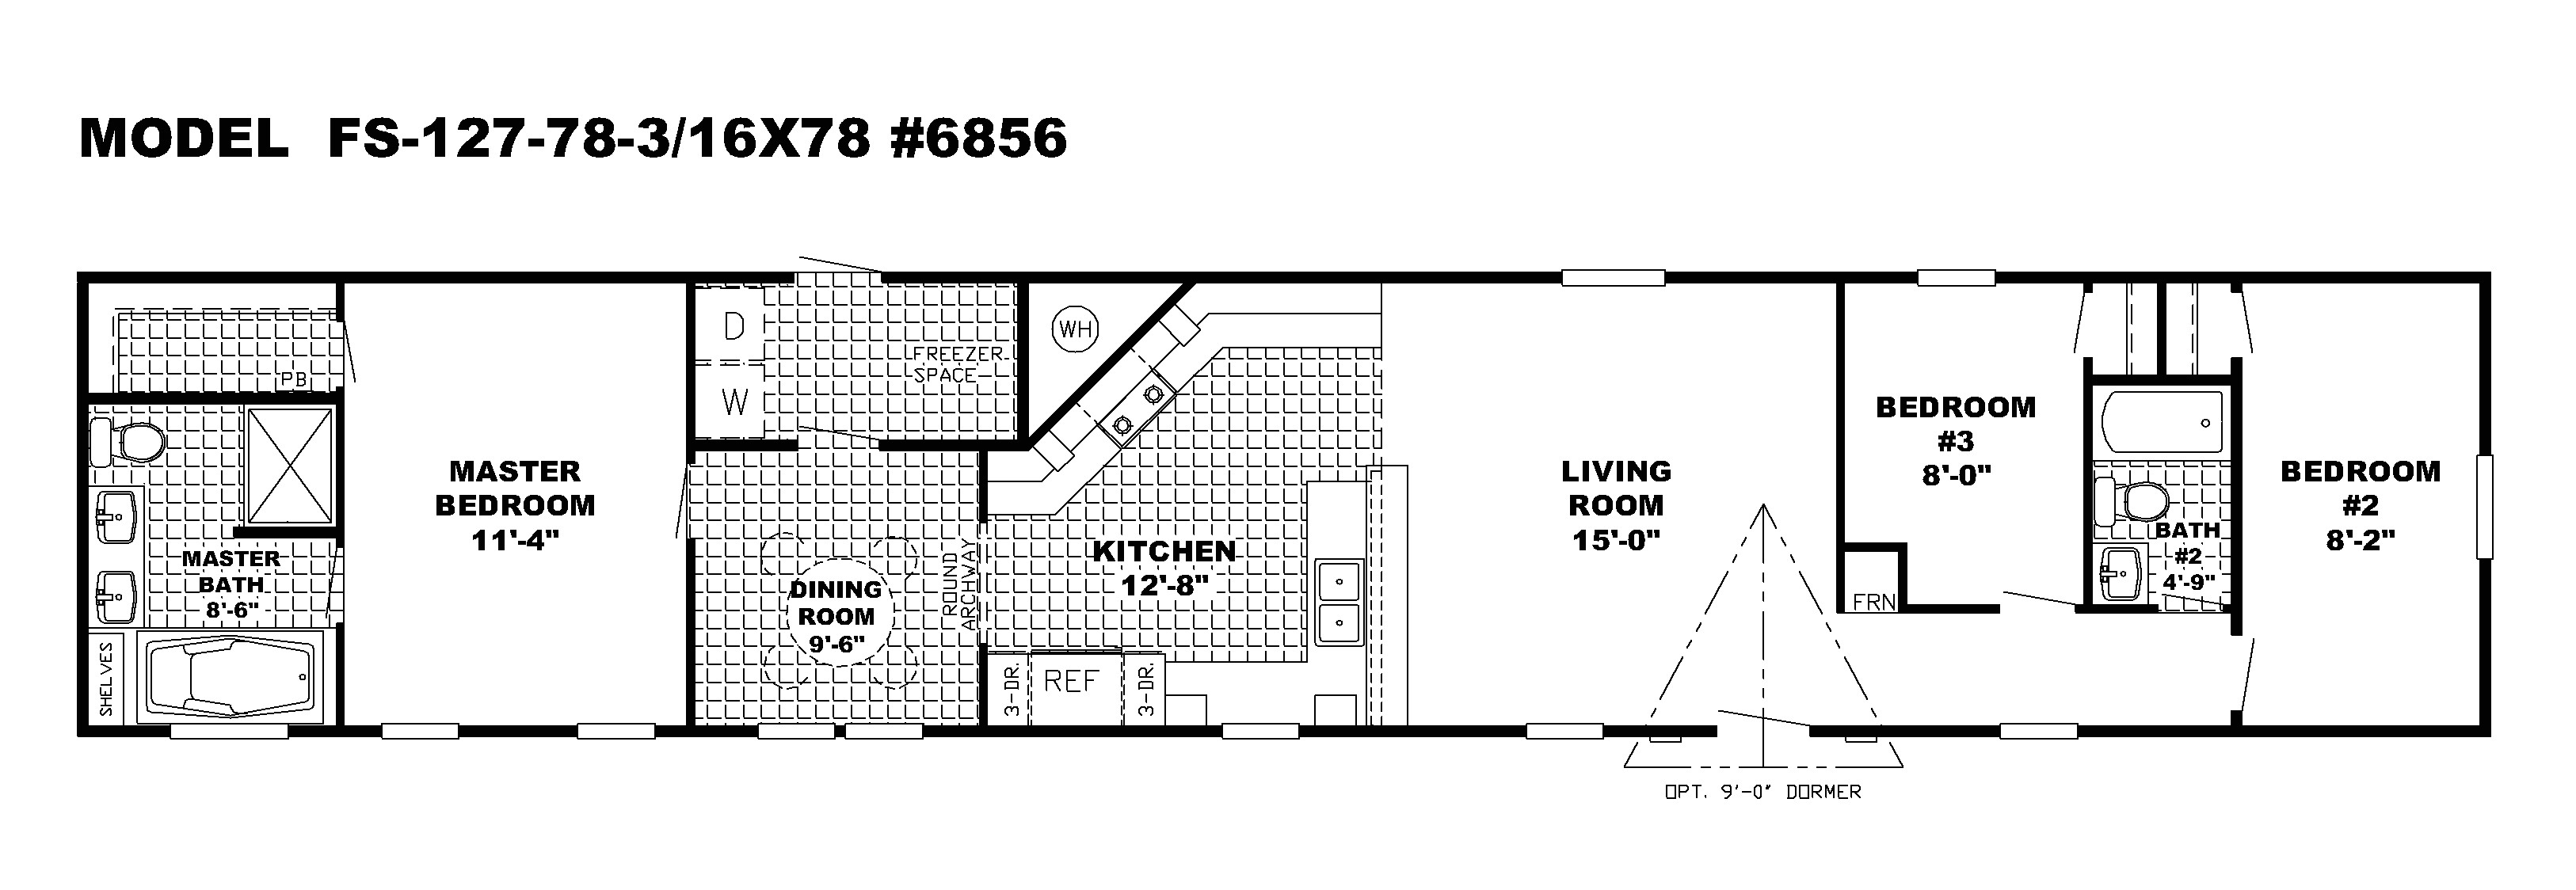 3 bedroom single wide mobile home floor plans collection and homes double images